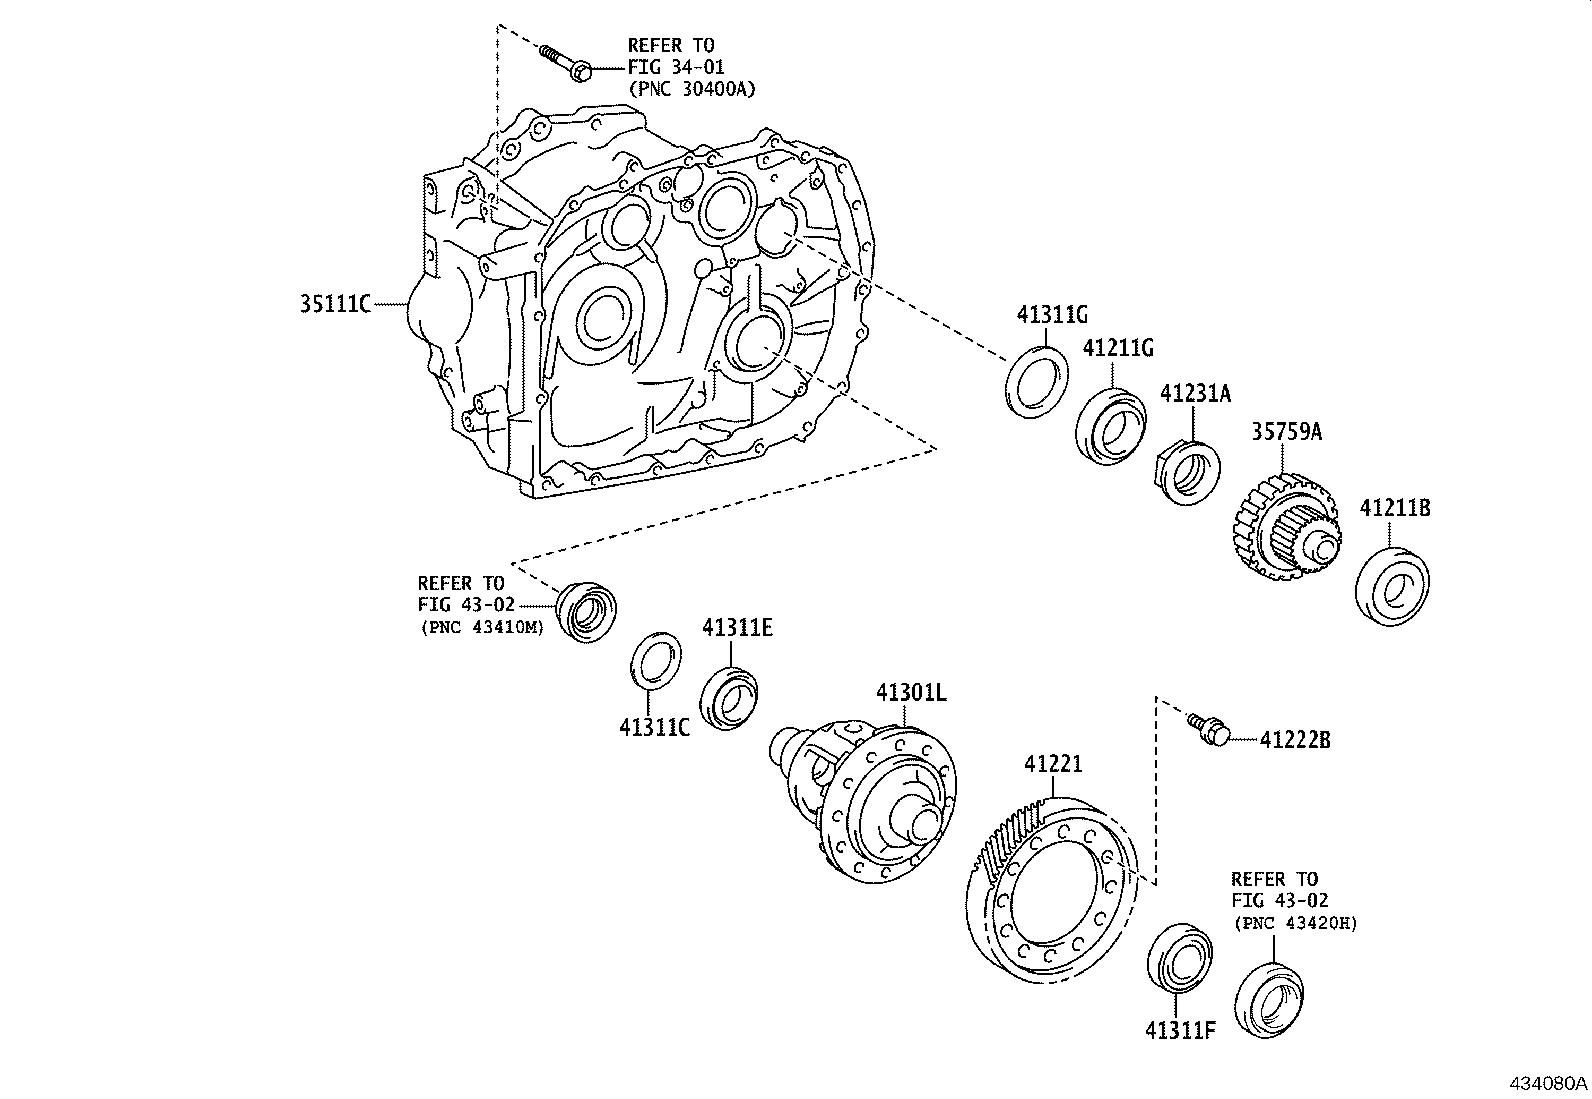 Toyota Corolla Case Front Transaxle Mtm Differential Brakes Suspension